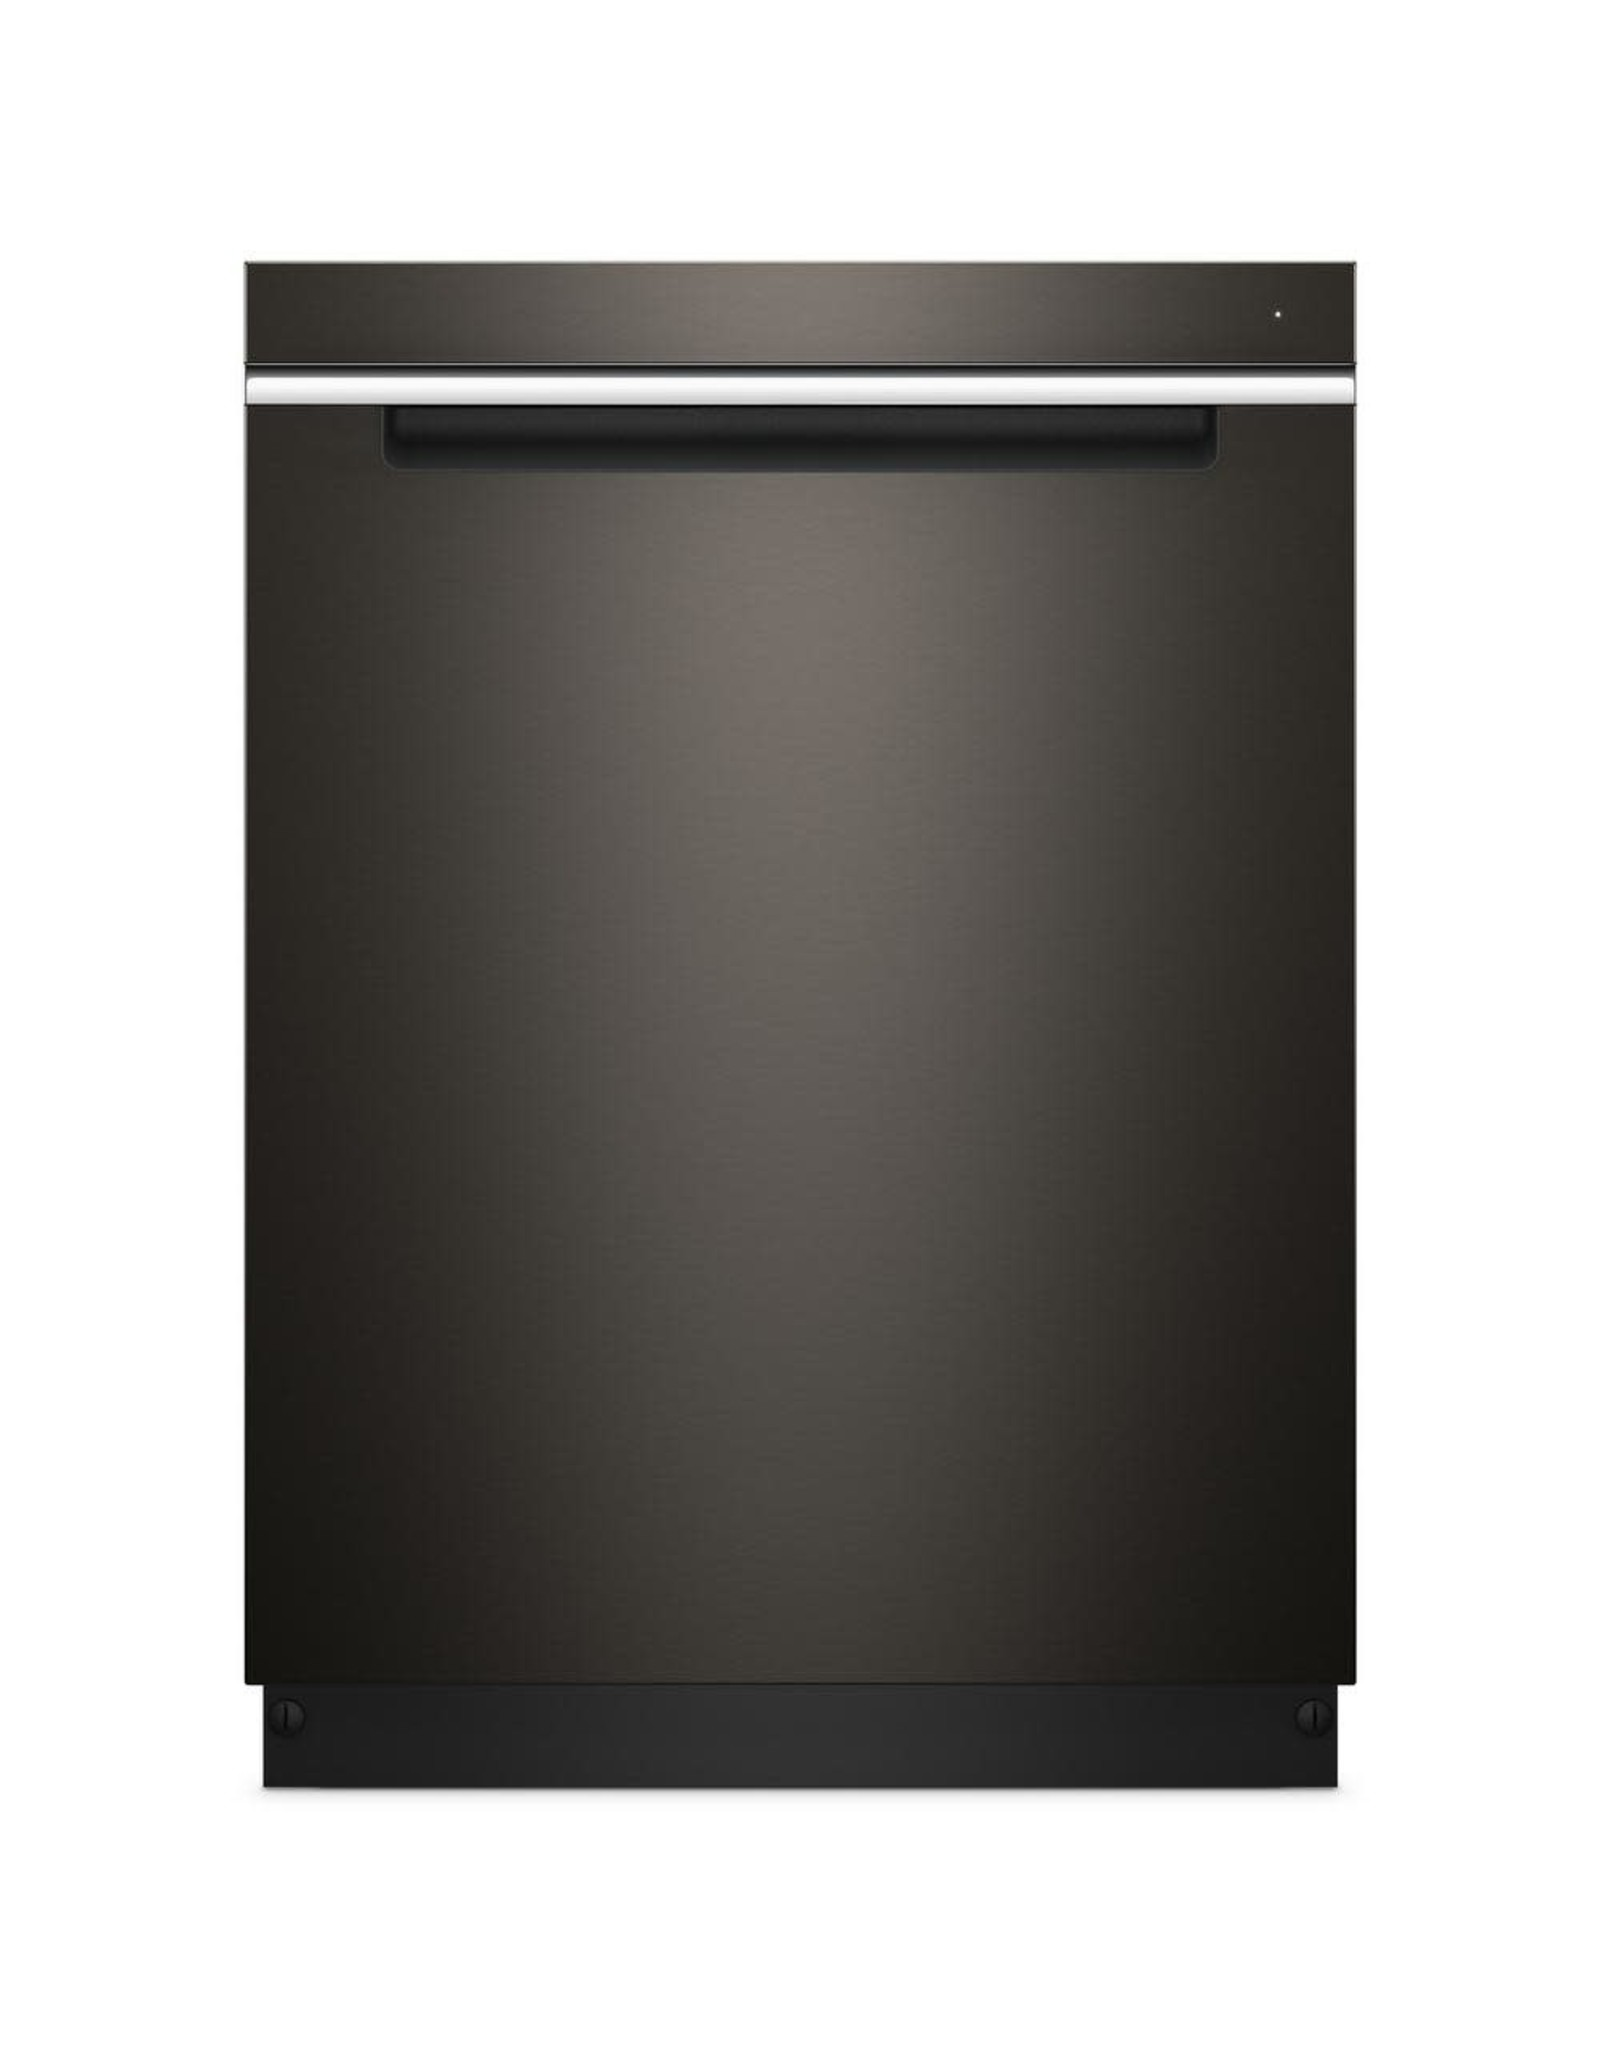 WDTA50SAHV WHR Built-in - Dishwasher - 5 CYC, 6 OPT, FULLY INTEGRATED CONSOLE,